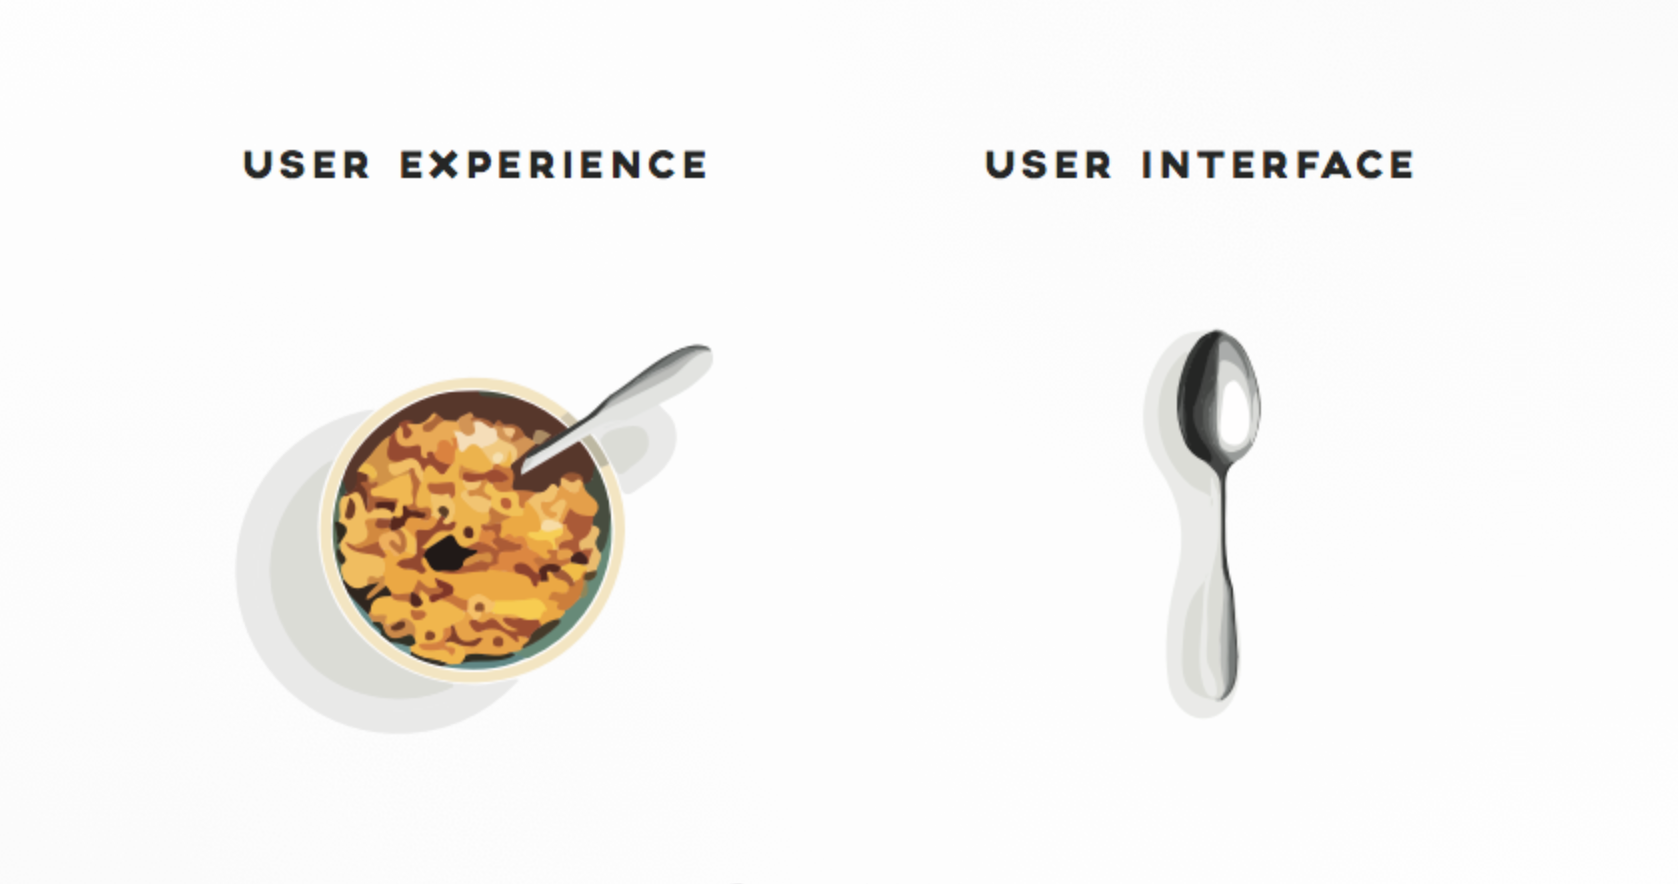 an image comparing ui vs. ux